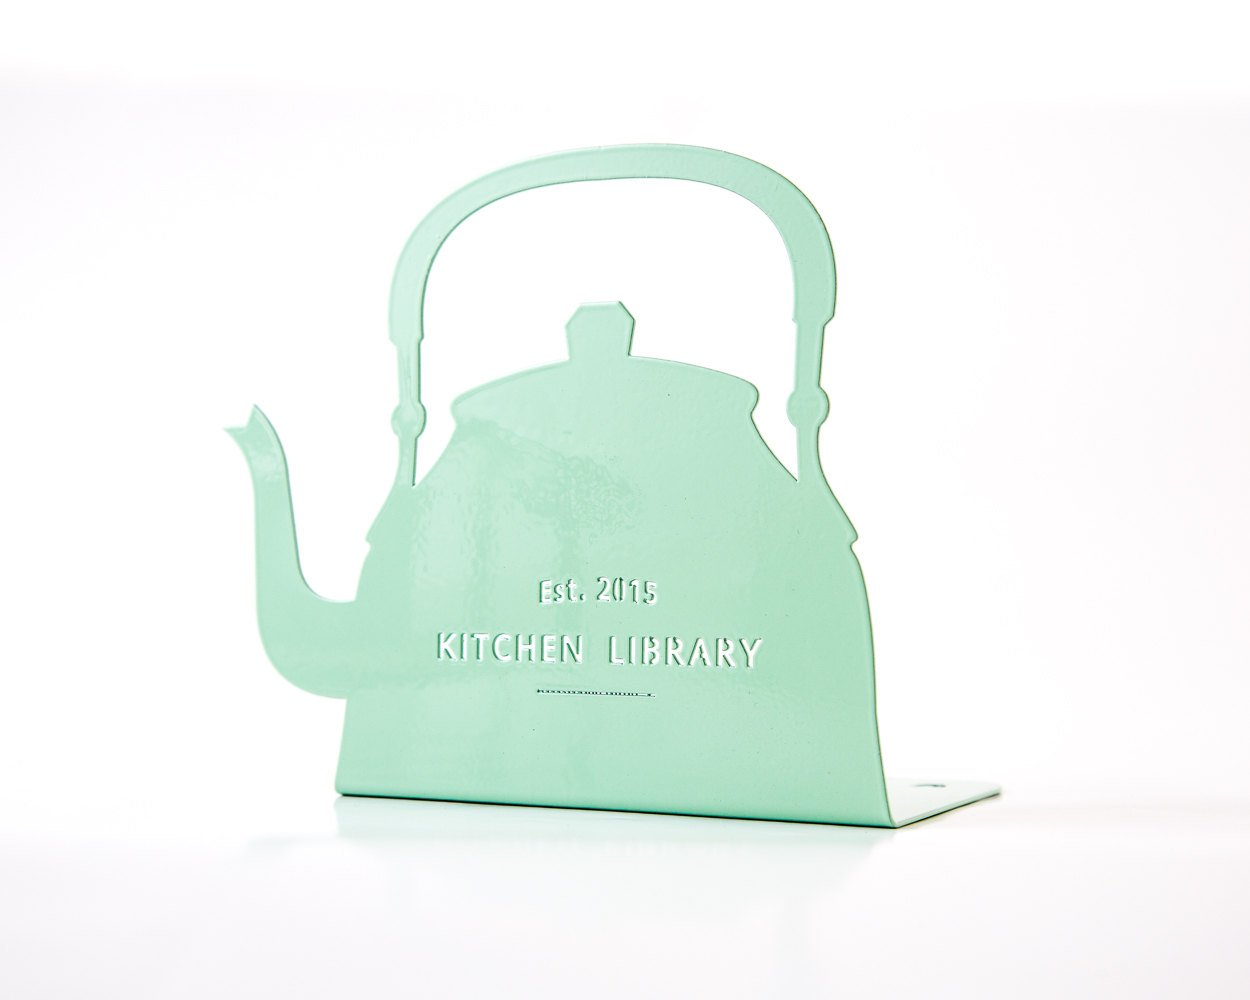 Bookend Kettle // decorative holder for your stylish kitchen library // artistic functional decor for kitchen bookshelf // FREE SHIPPING - Design Atelier Article